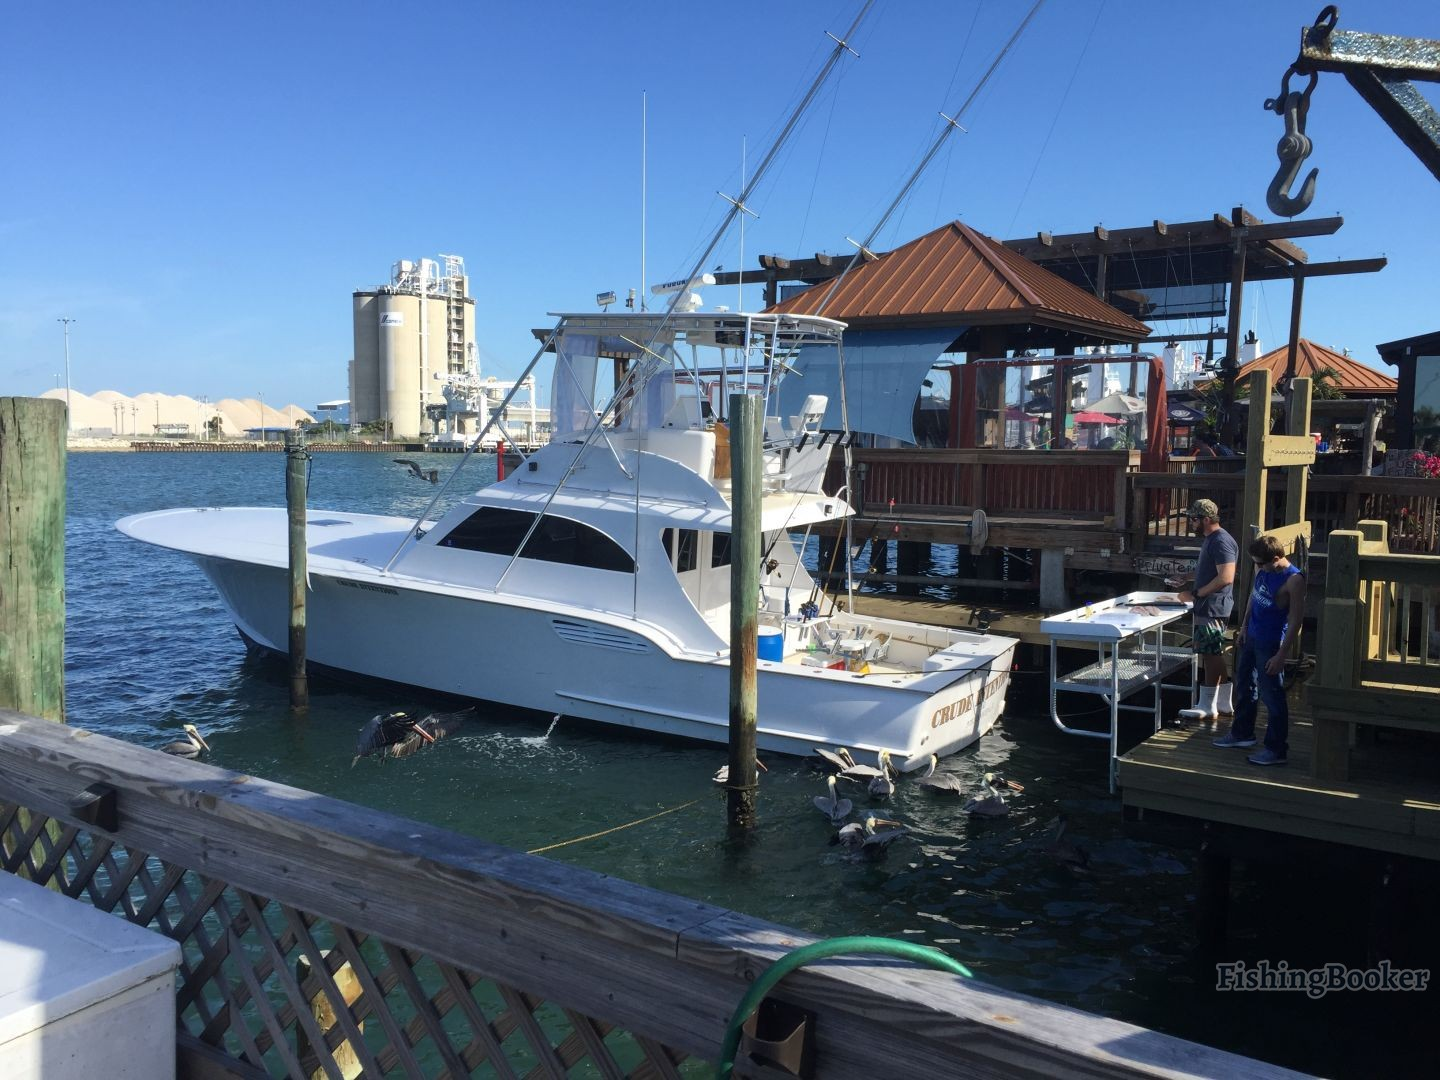 Cocoa beach sportfishing 33 ft cape canaveral florida for Cape canaveral fishing